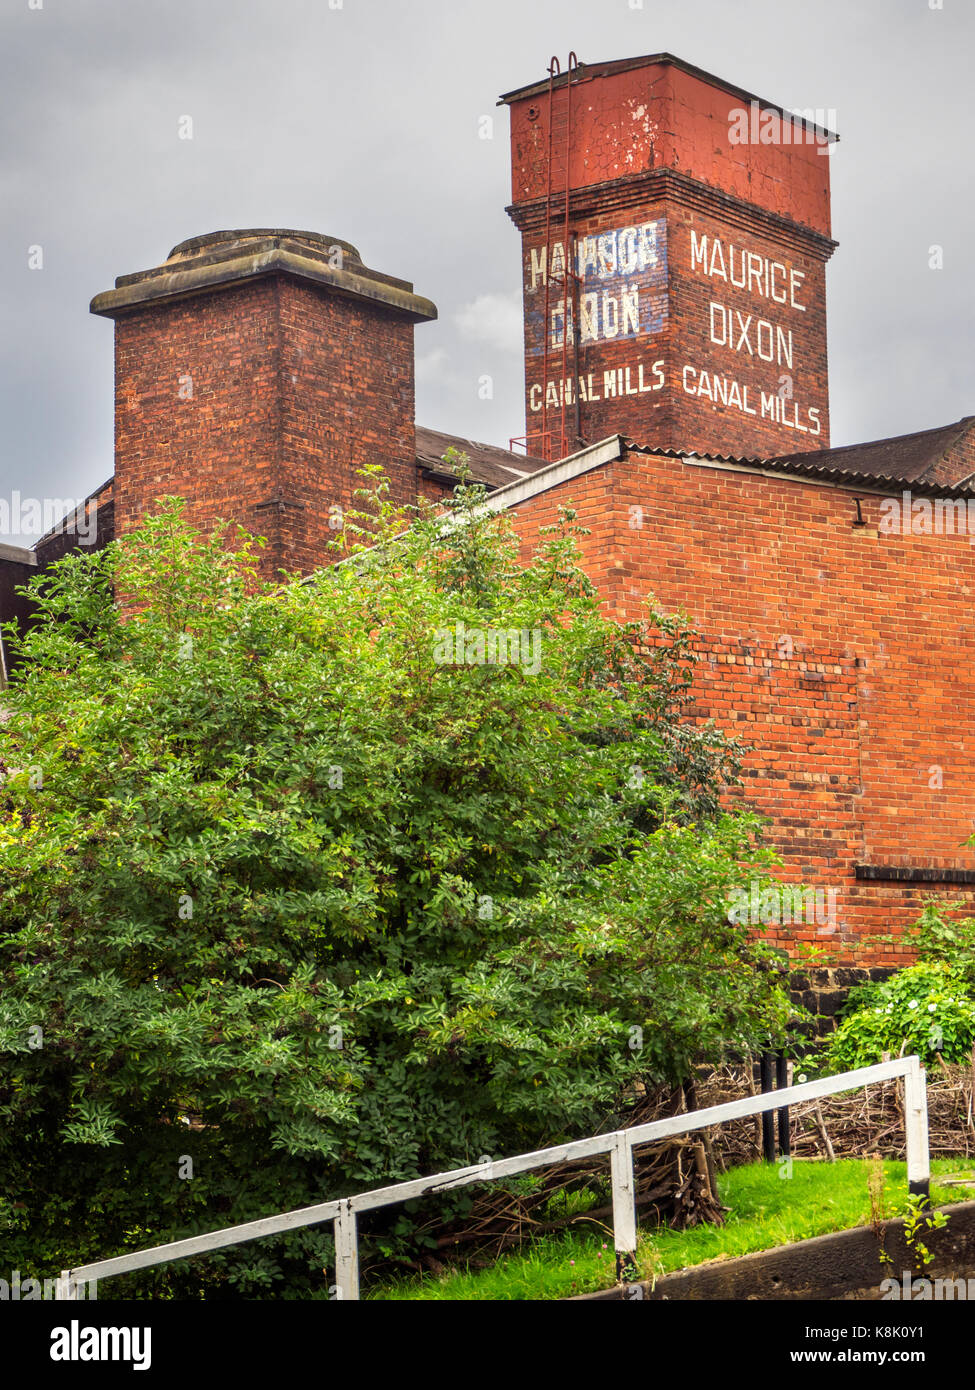 Old Canal Mills Building at Oddy Locks on the Leeds and Liverpool Canal in Leeds West Yorkshire England - Stock Image